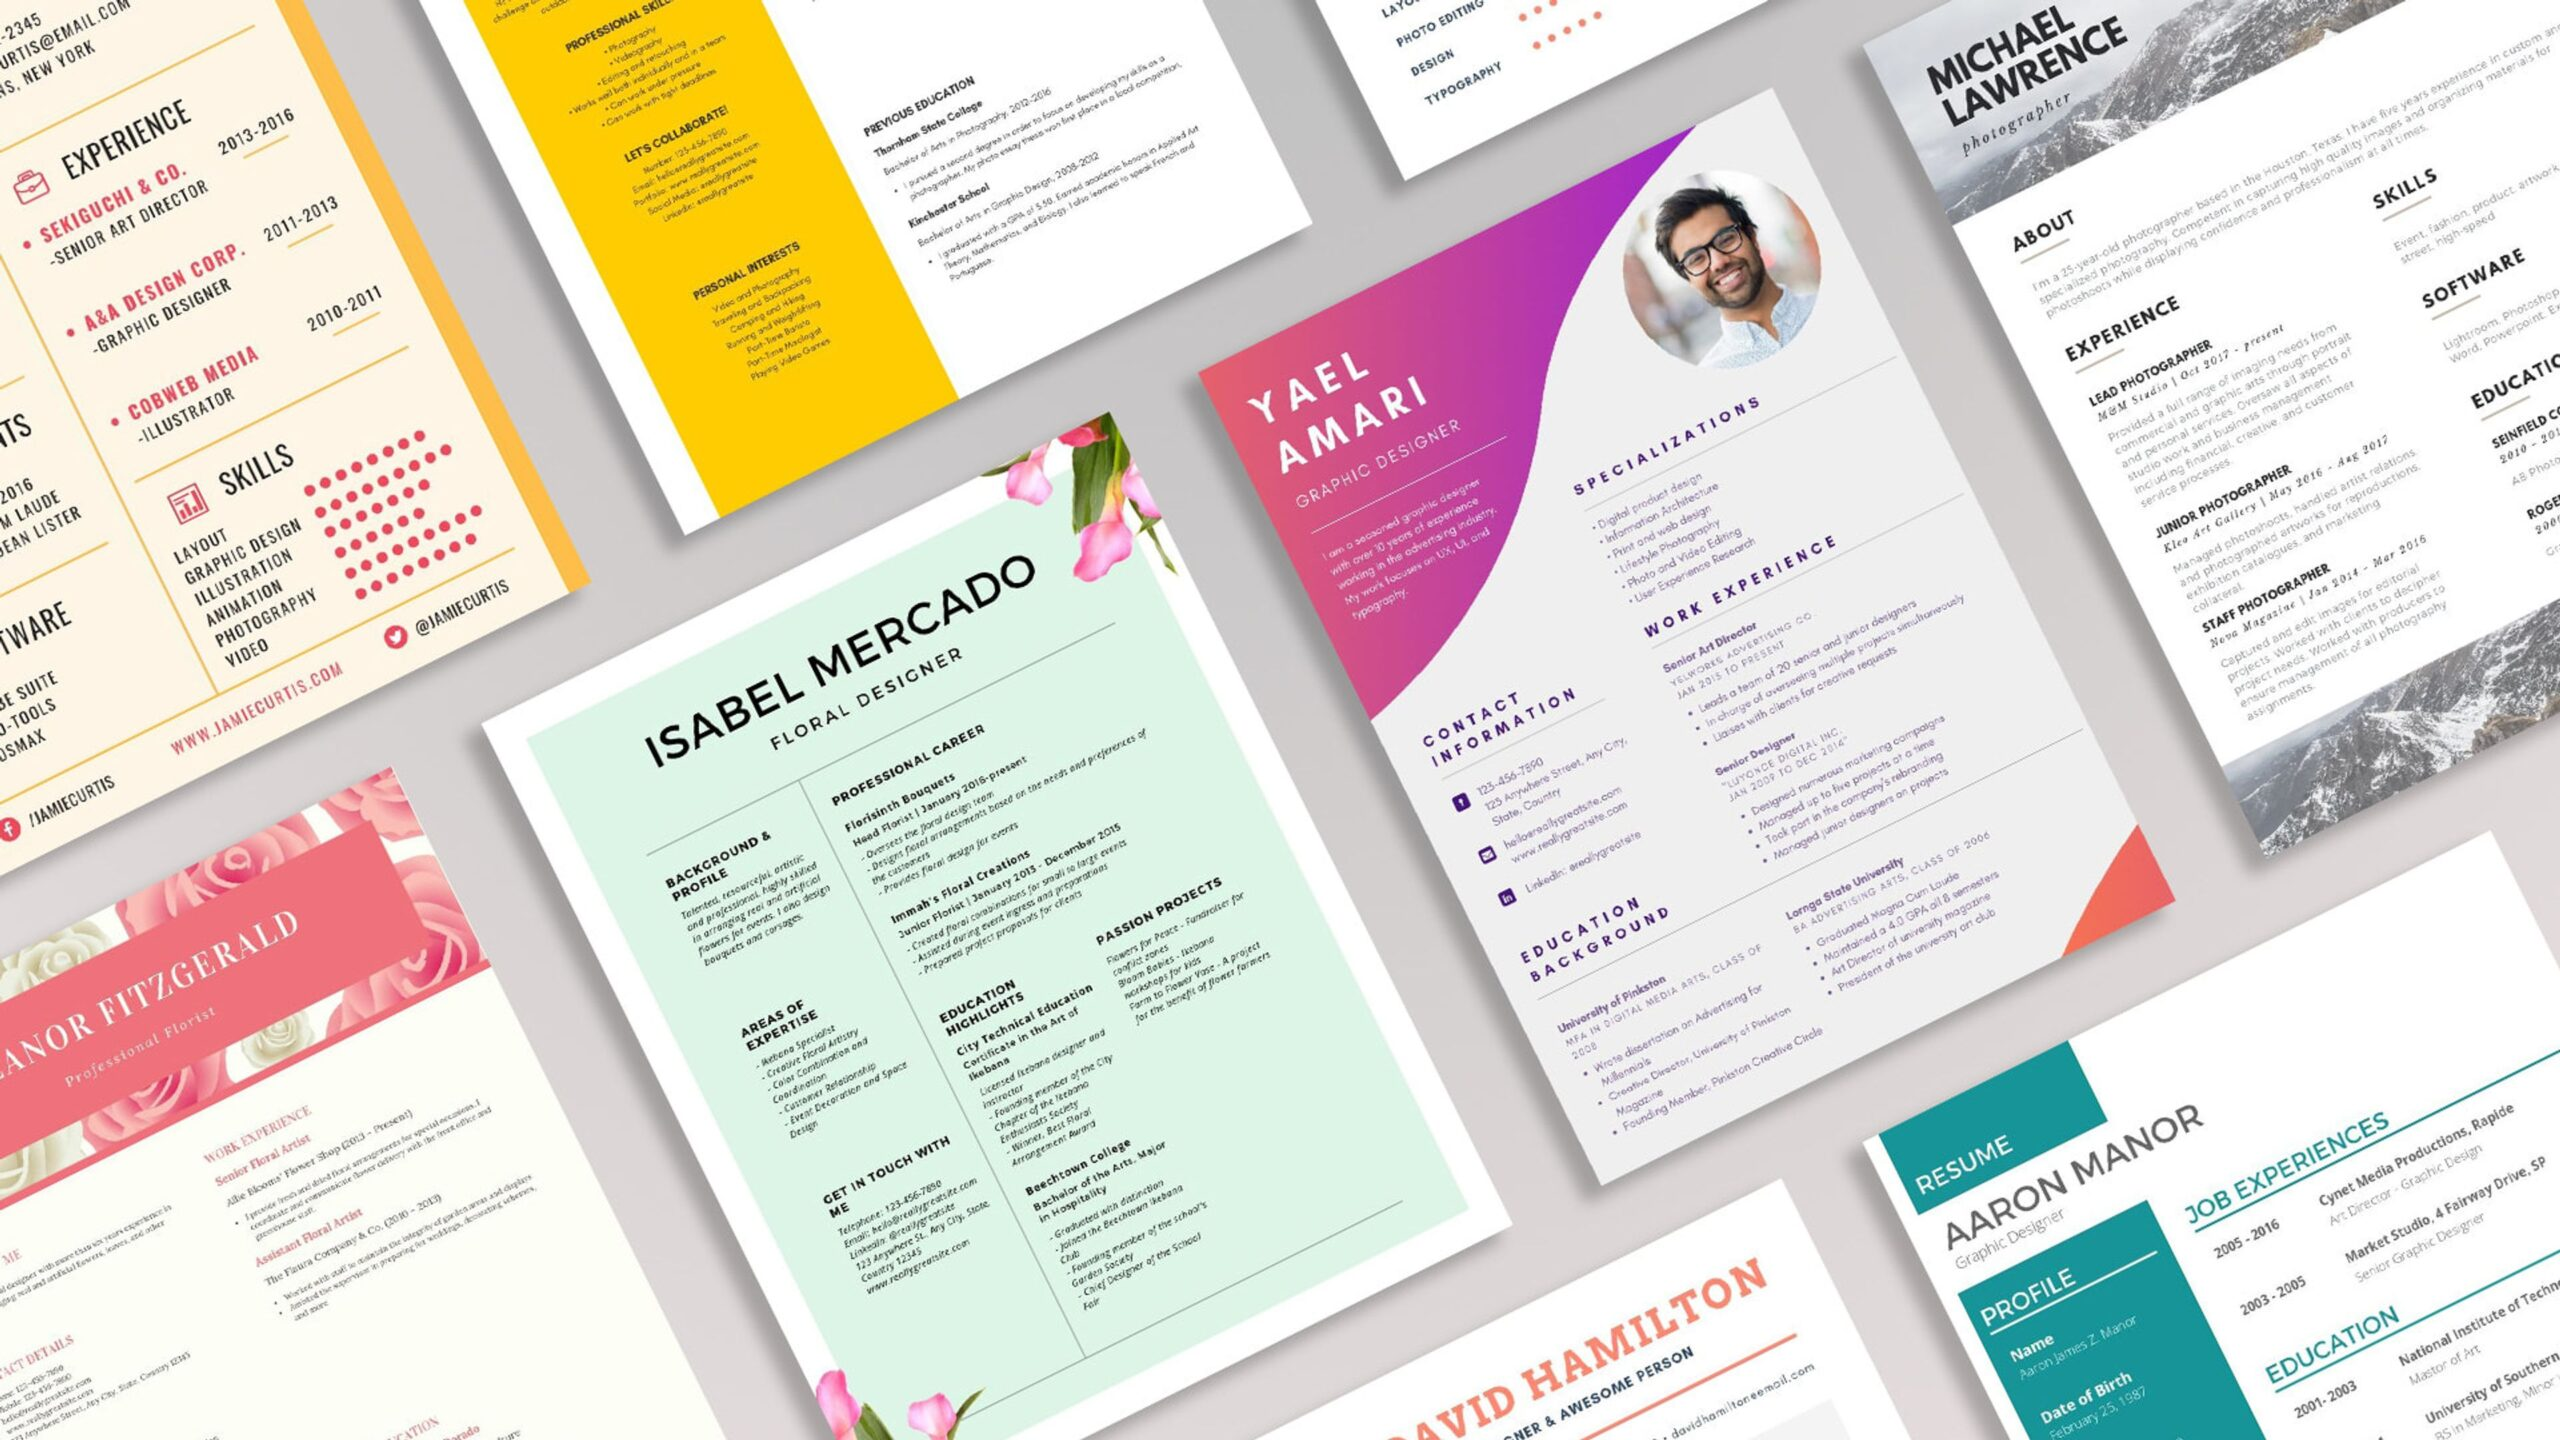 modern professional resume templates to try samples resumes expected graduation on Resume Professional Modern Resume Samples